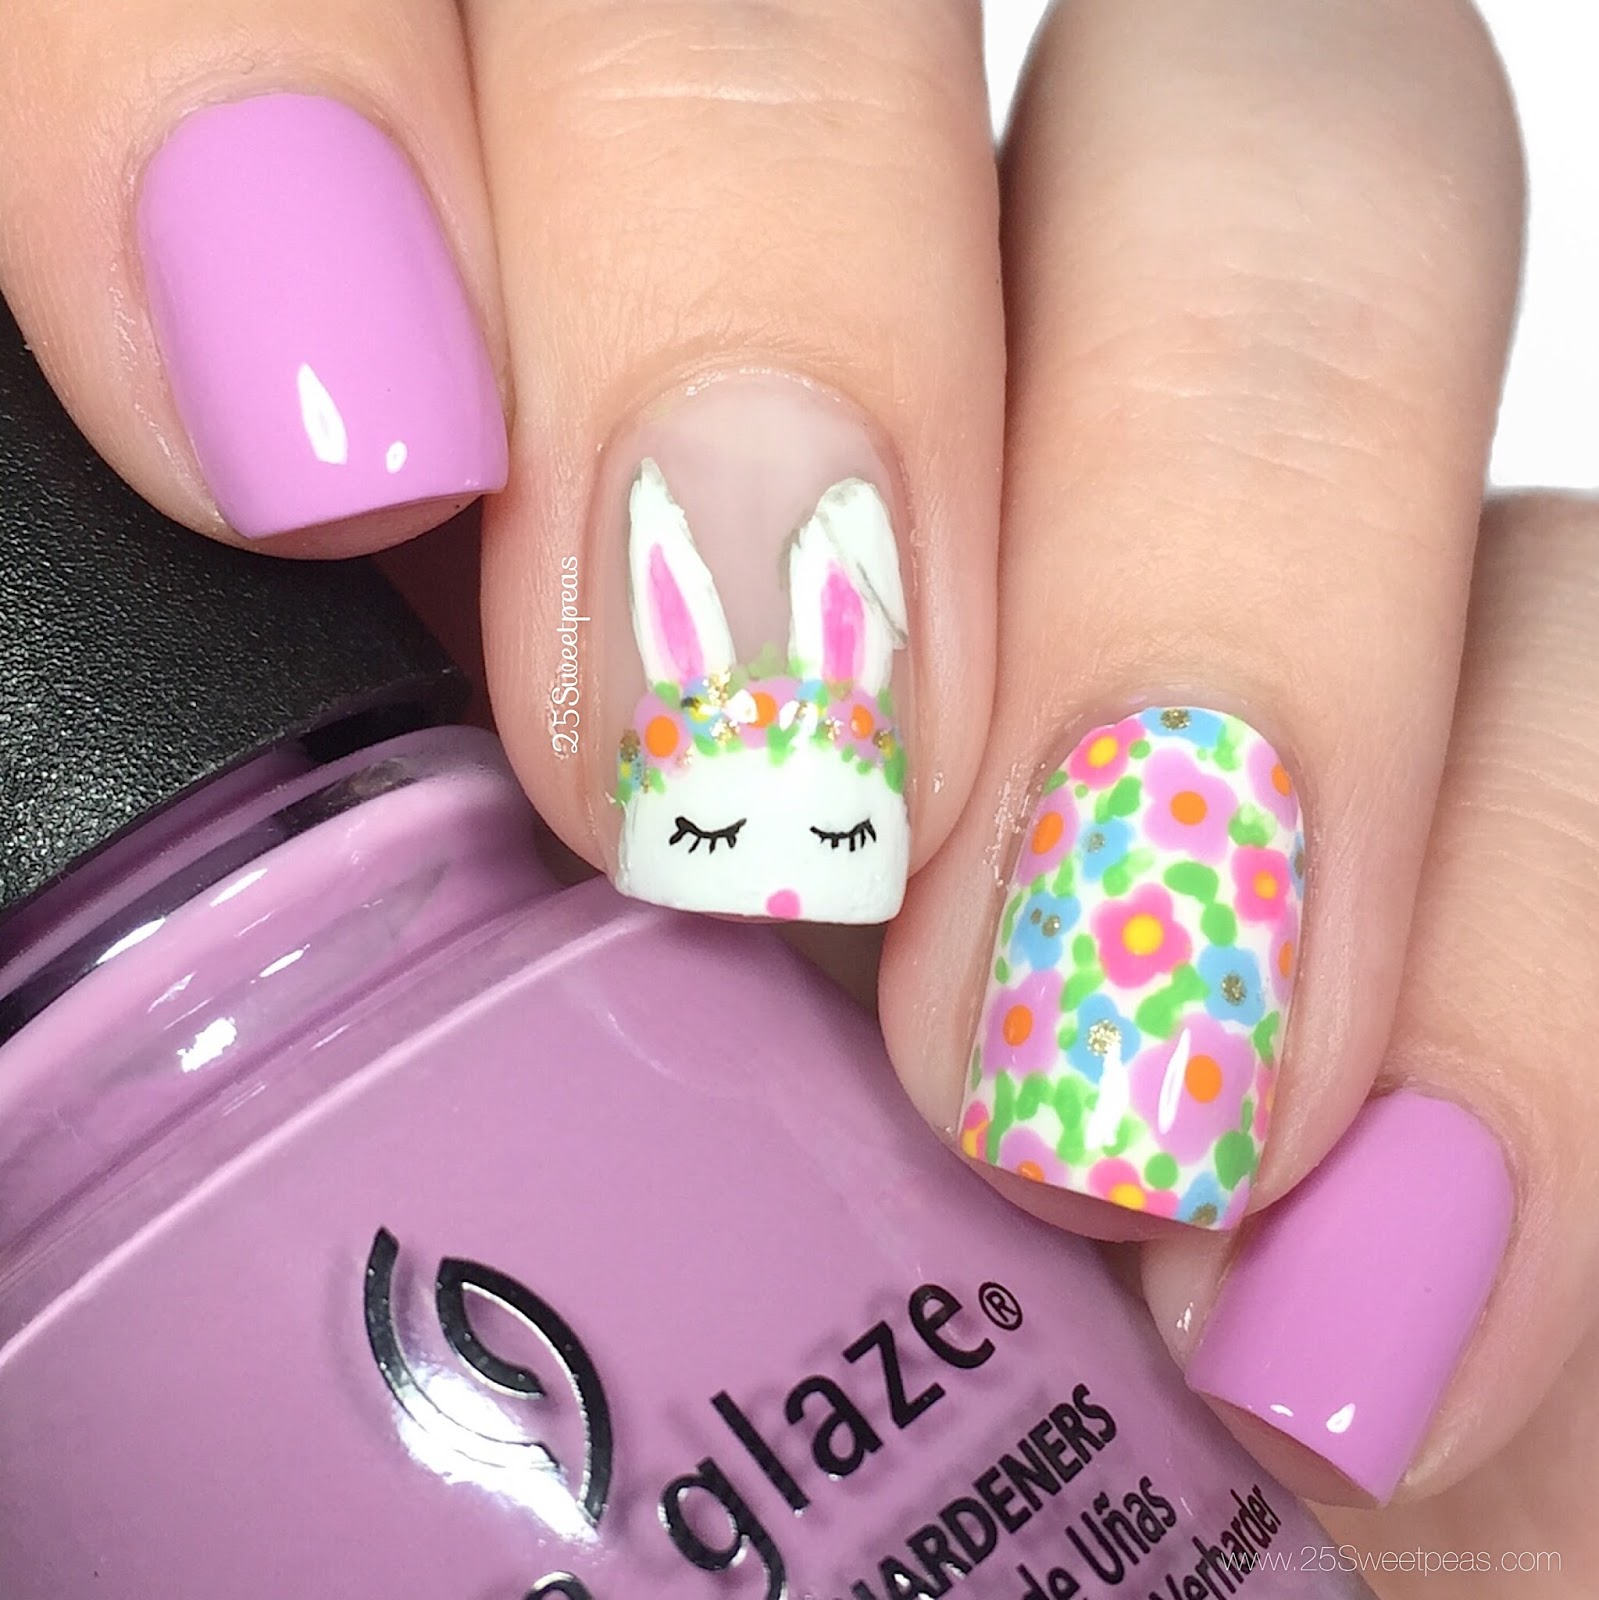 bunny nail design from @25sweetpeas